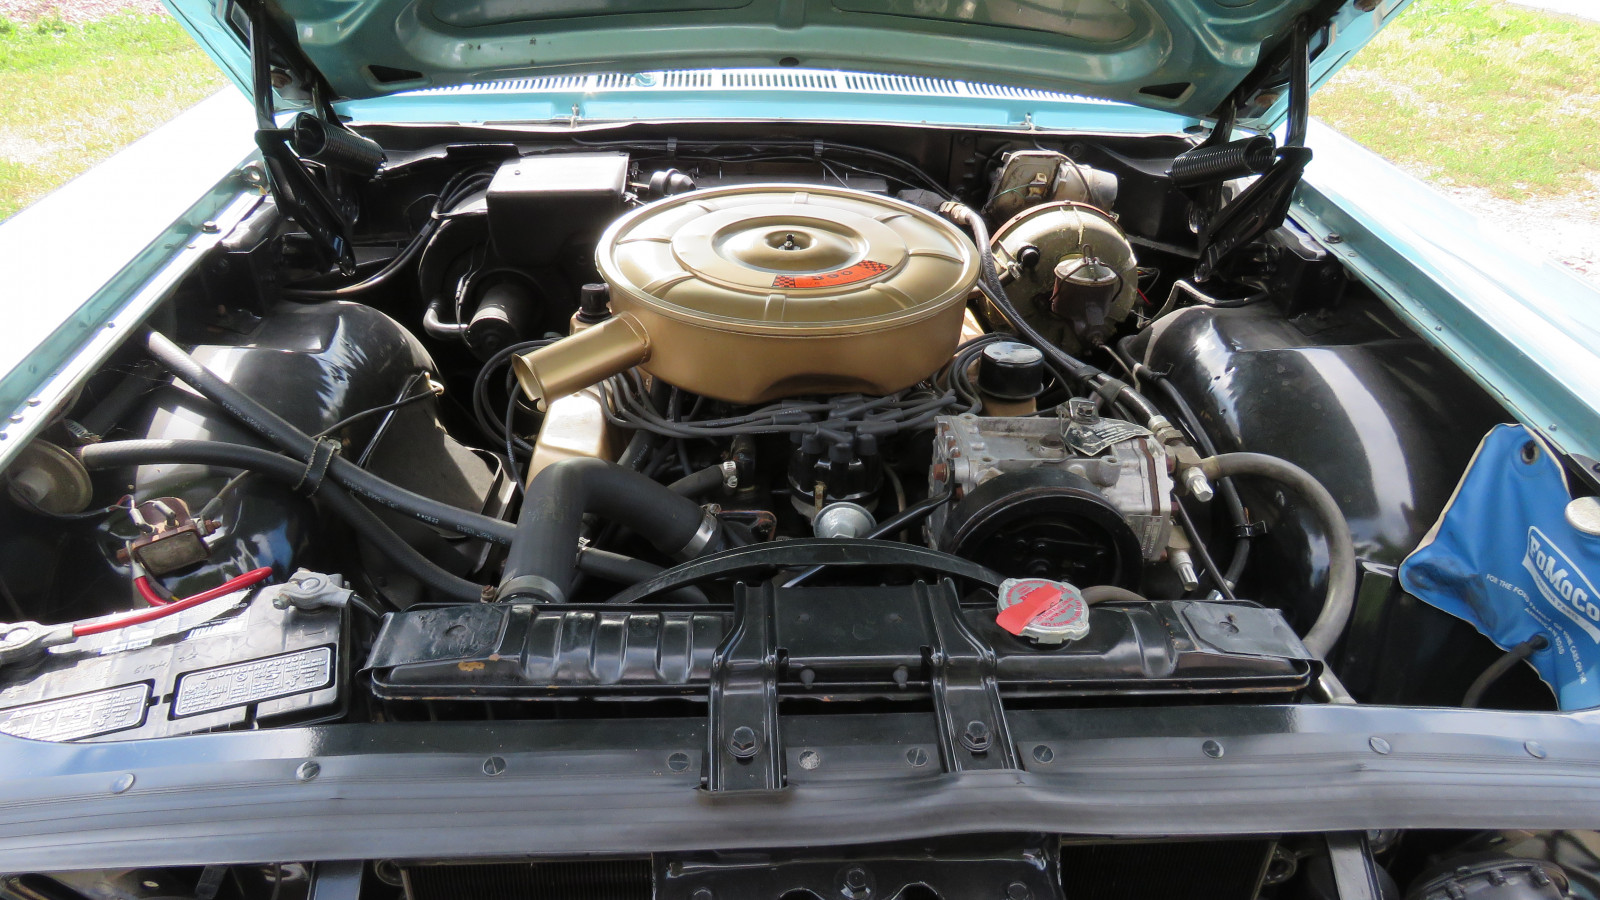 1965 Ford Galaxie 500 4dr HT - Image 13